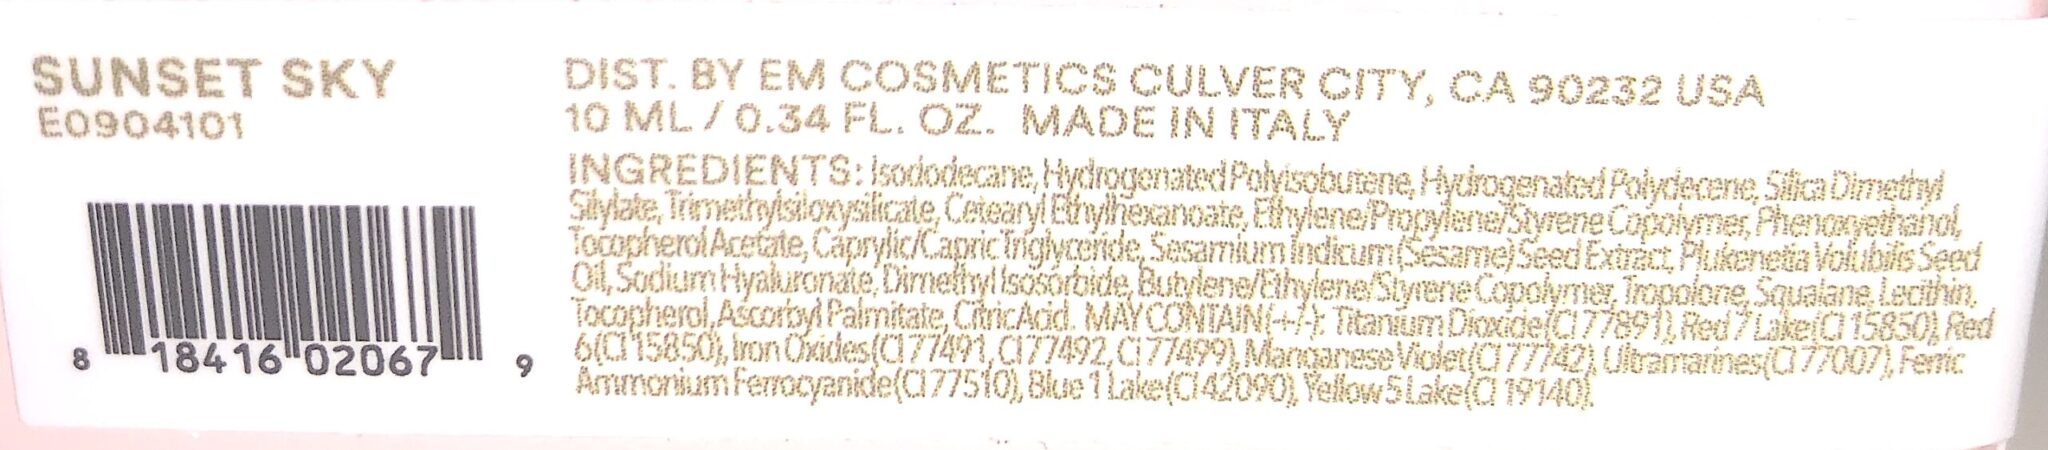 EM COSMETICS COLOR DROPS SERUM BLUSH INGREDIENTS